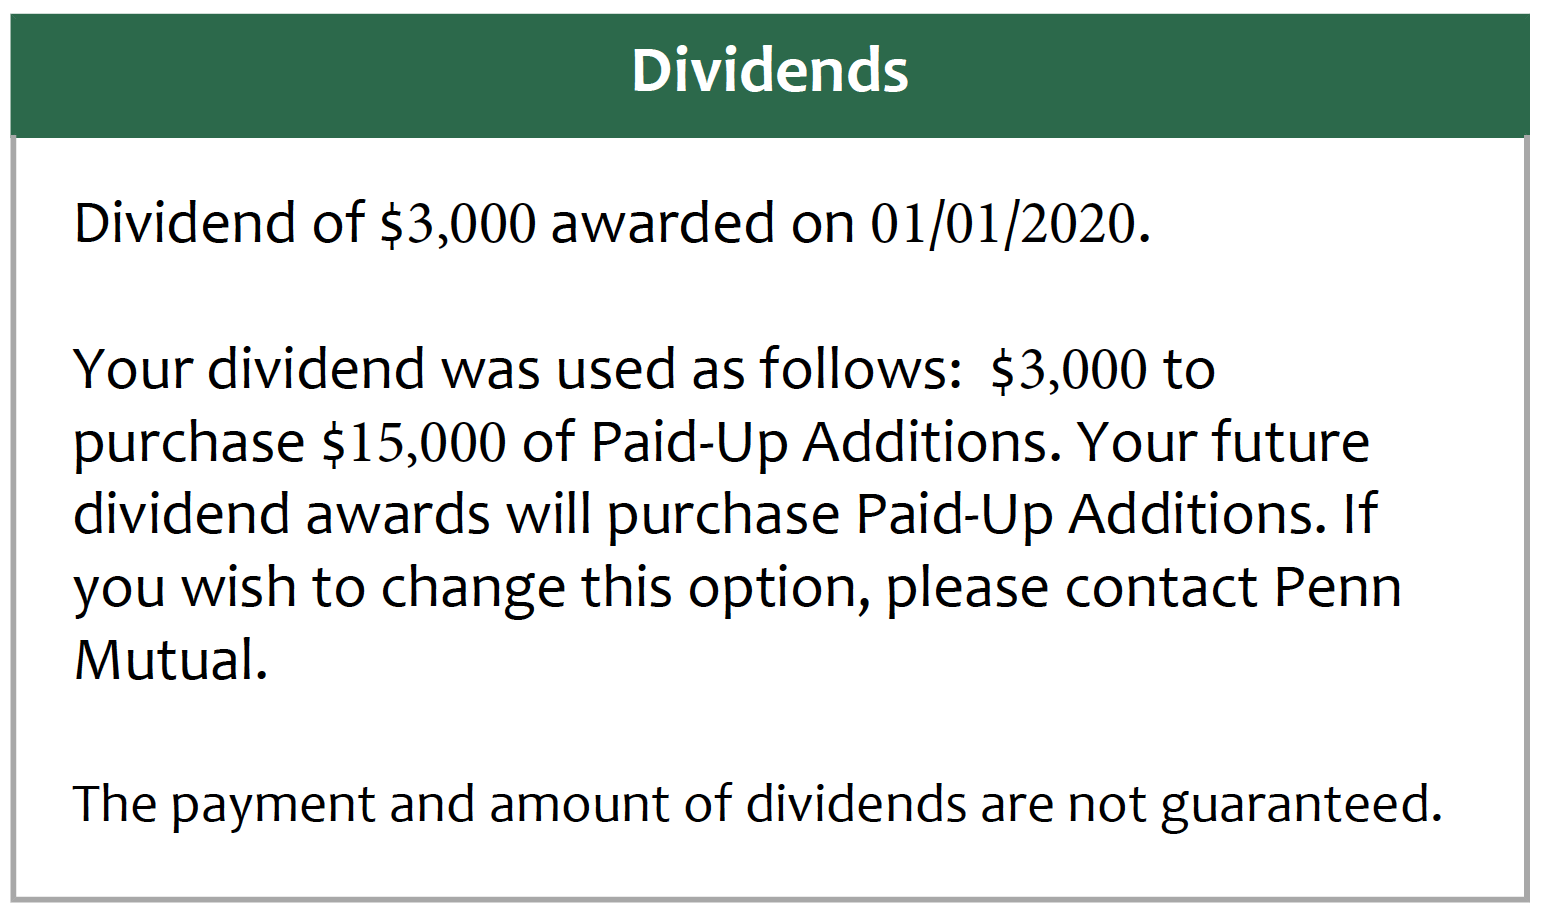 Whole Life Statement Dividend Information